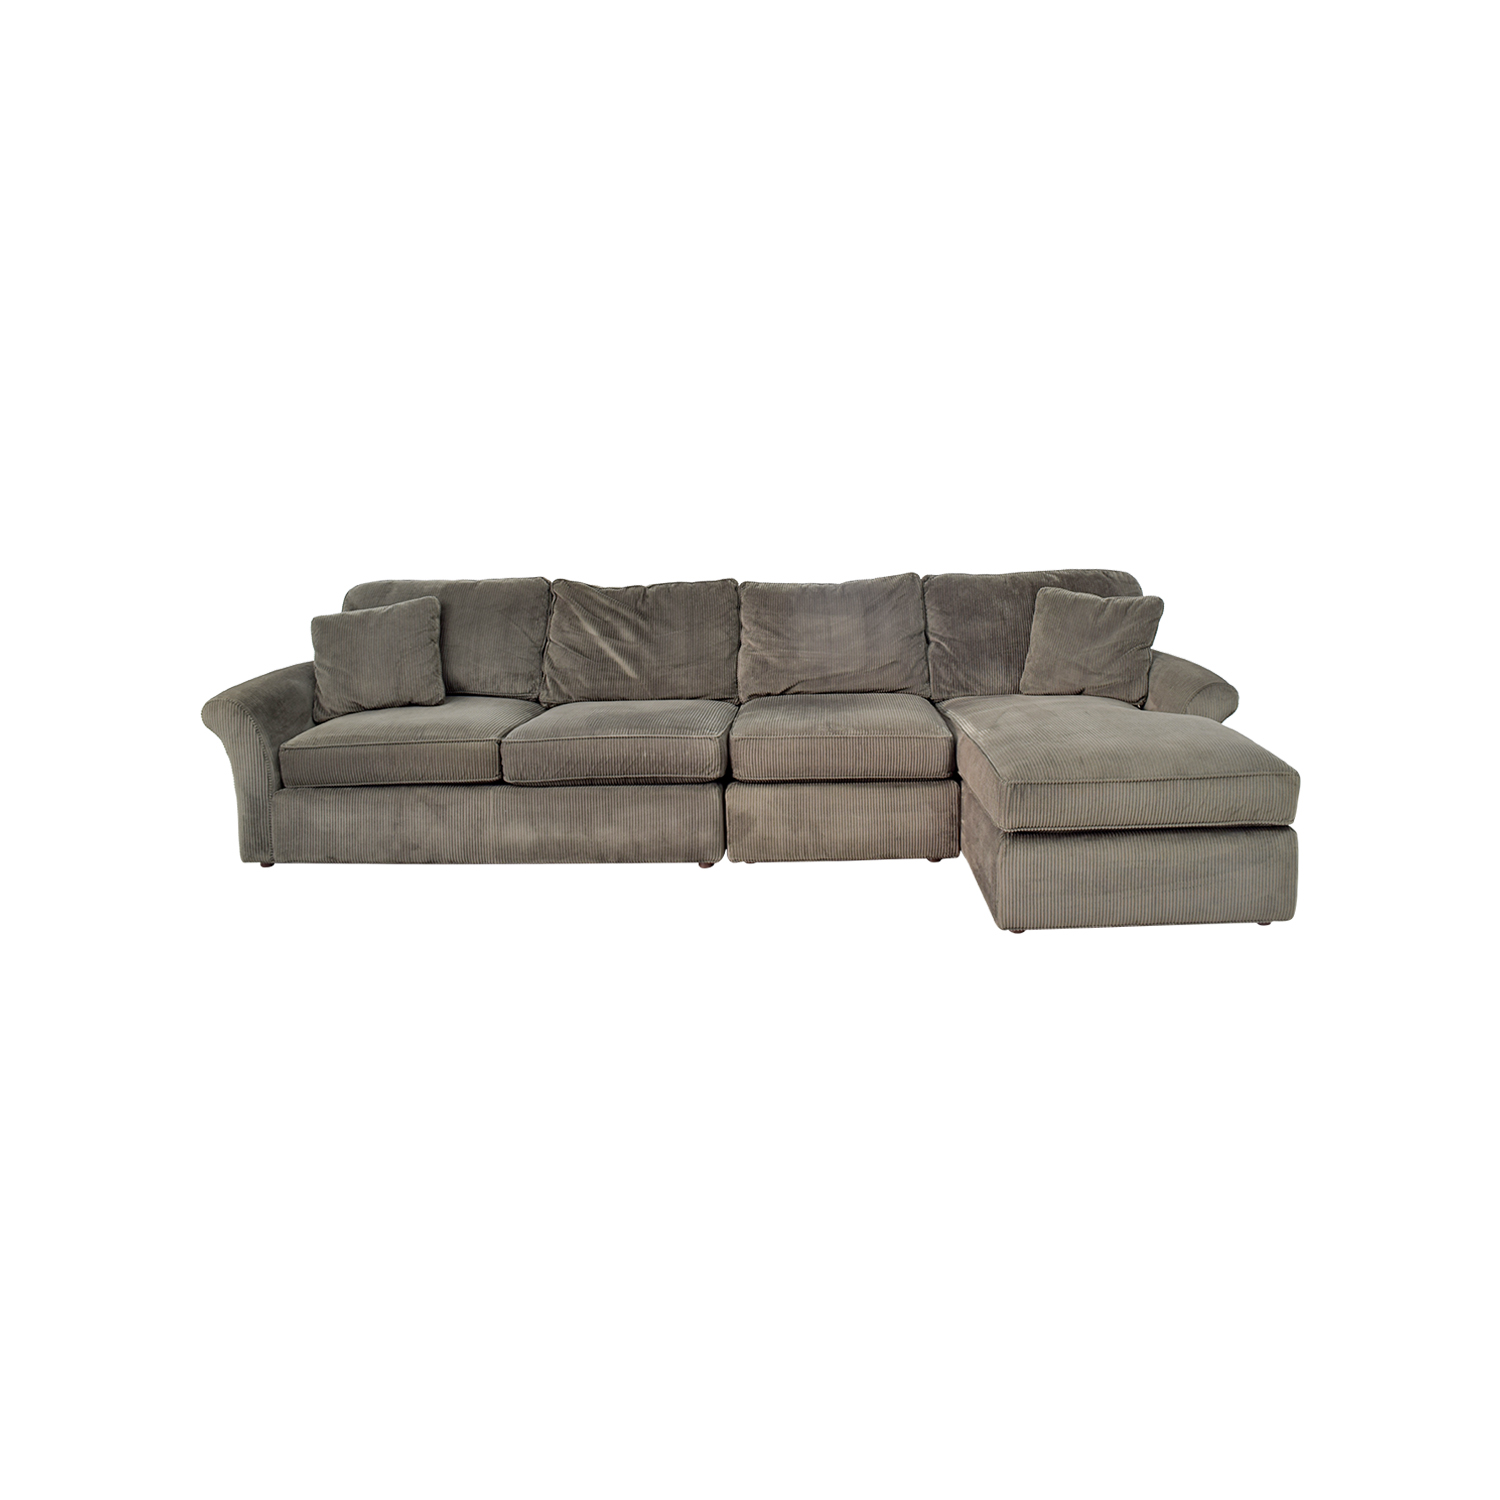 charcoal gray sectional sofa contempo sectionals used for sale